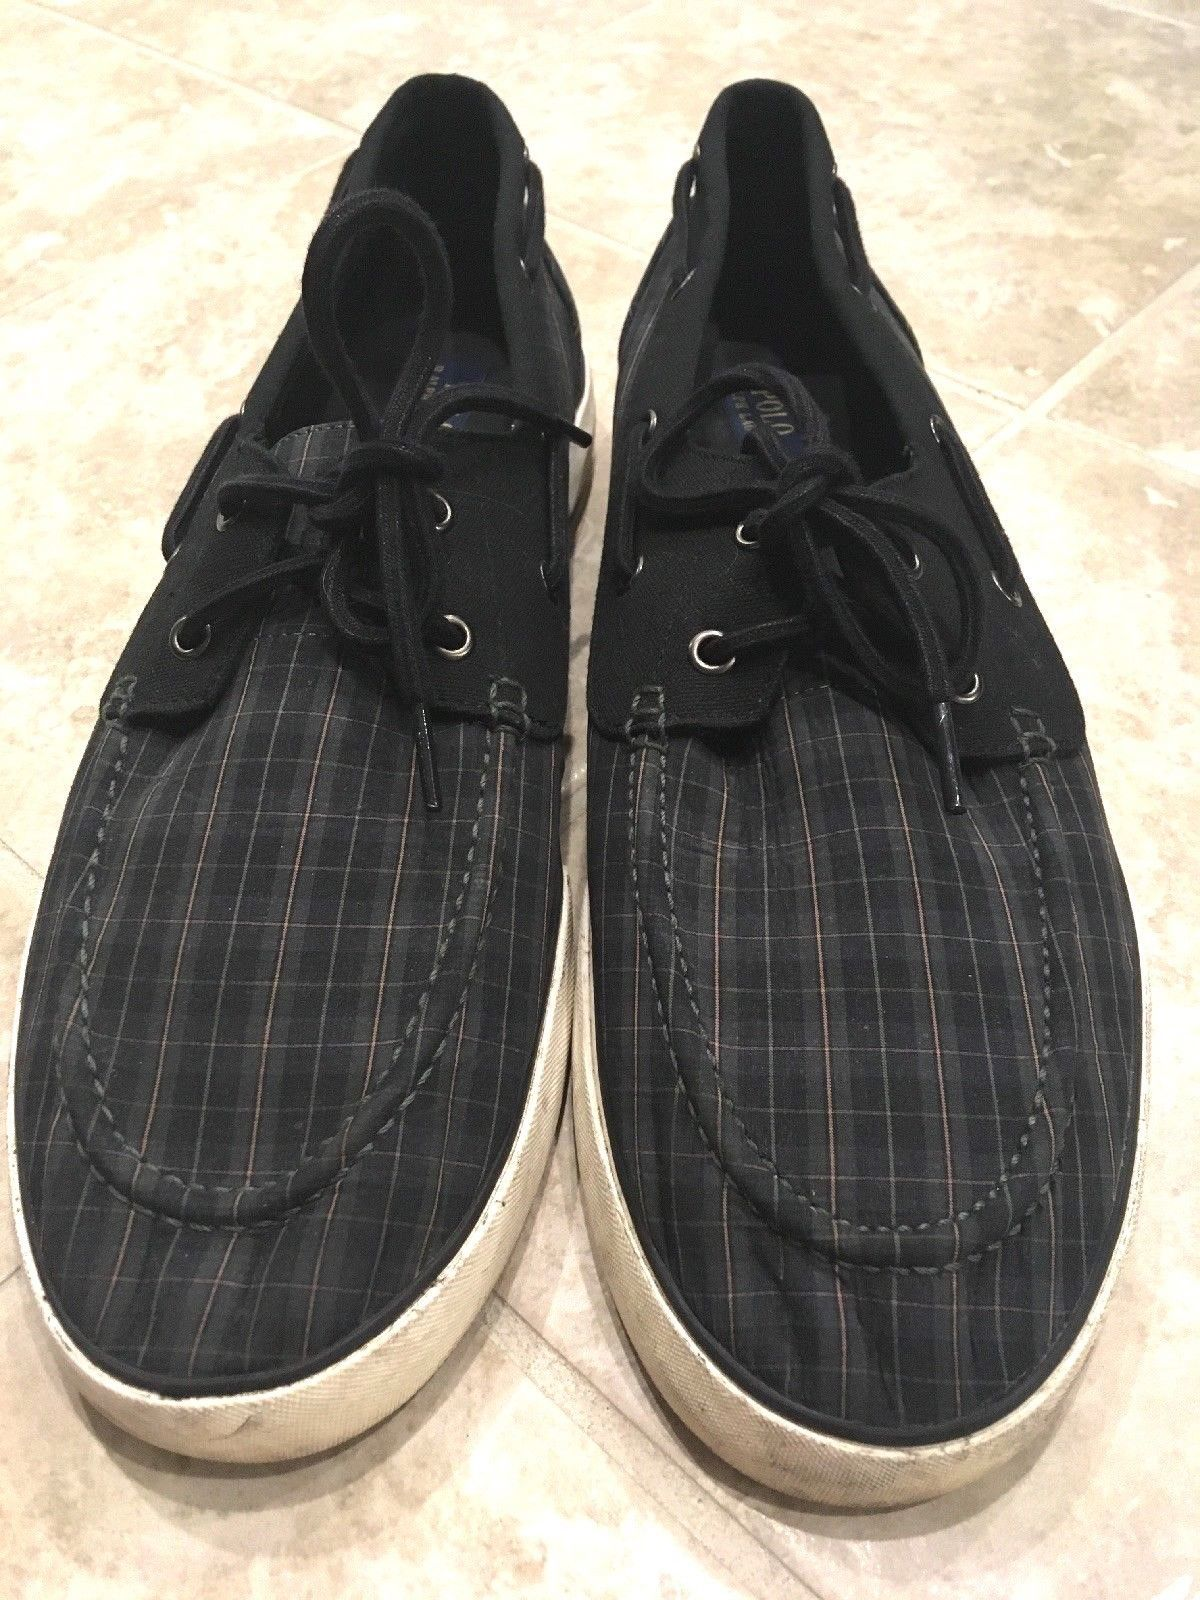 Polo Ralph Lauren Lander Black Green Sapphire Plaid Logo Sneakers Boat Shoes 15